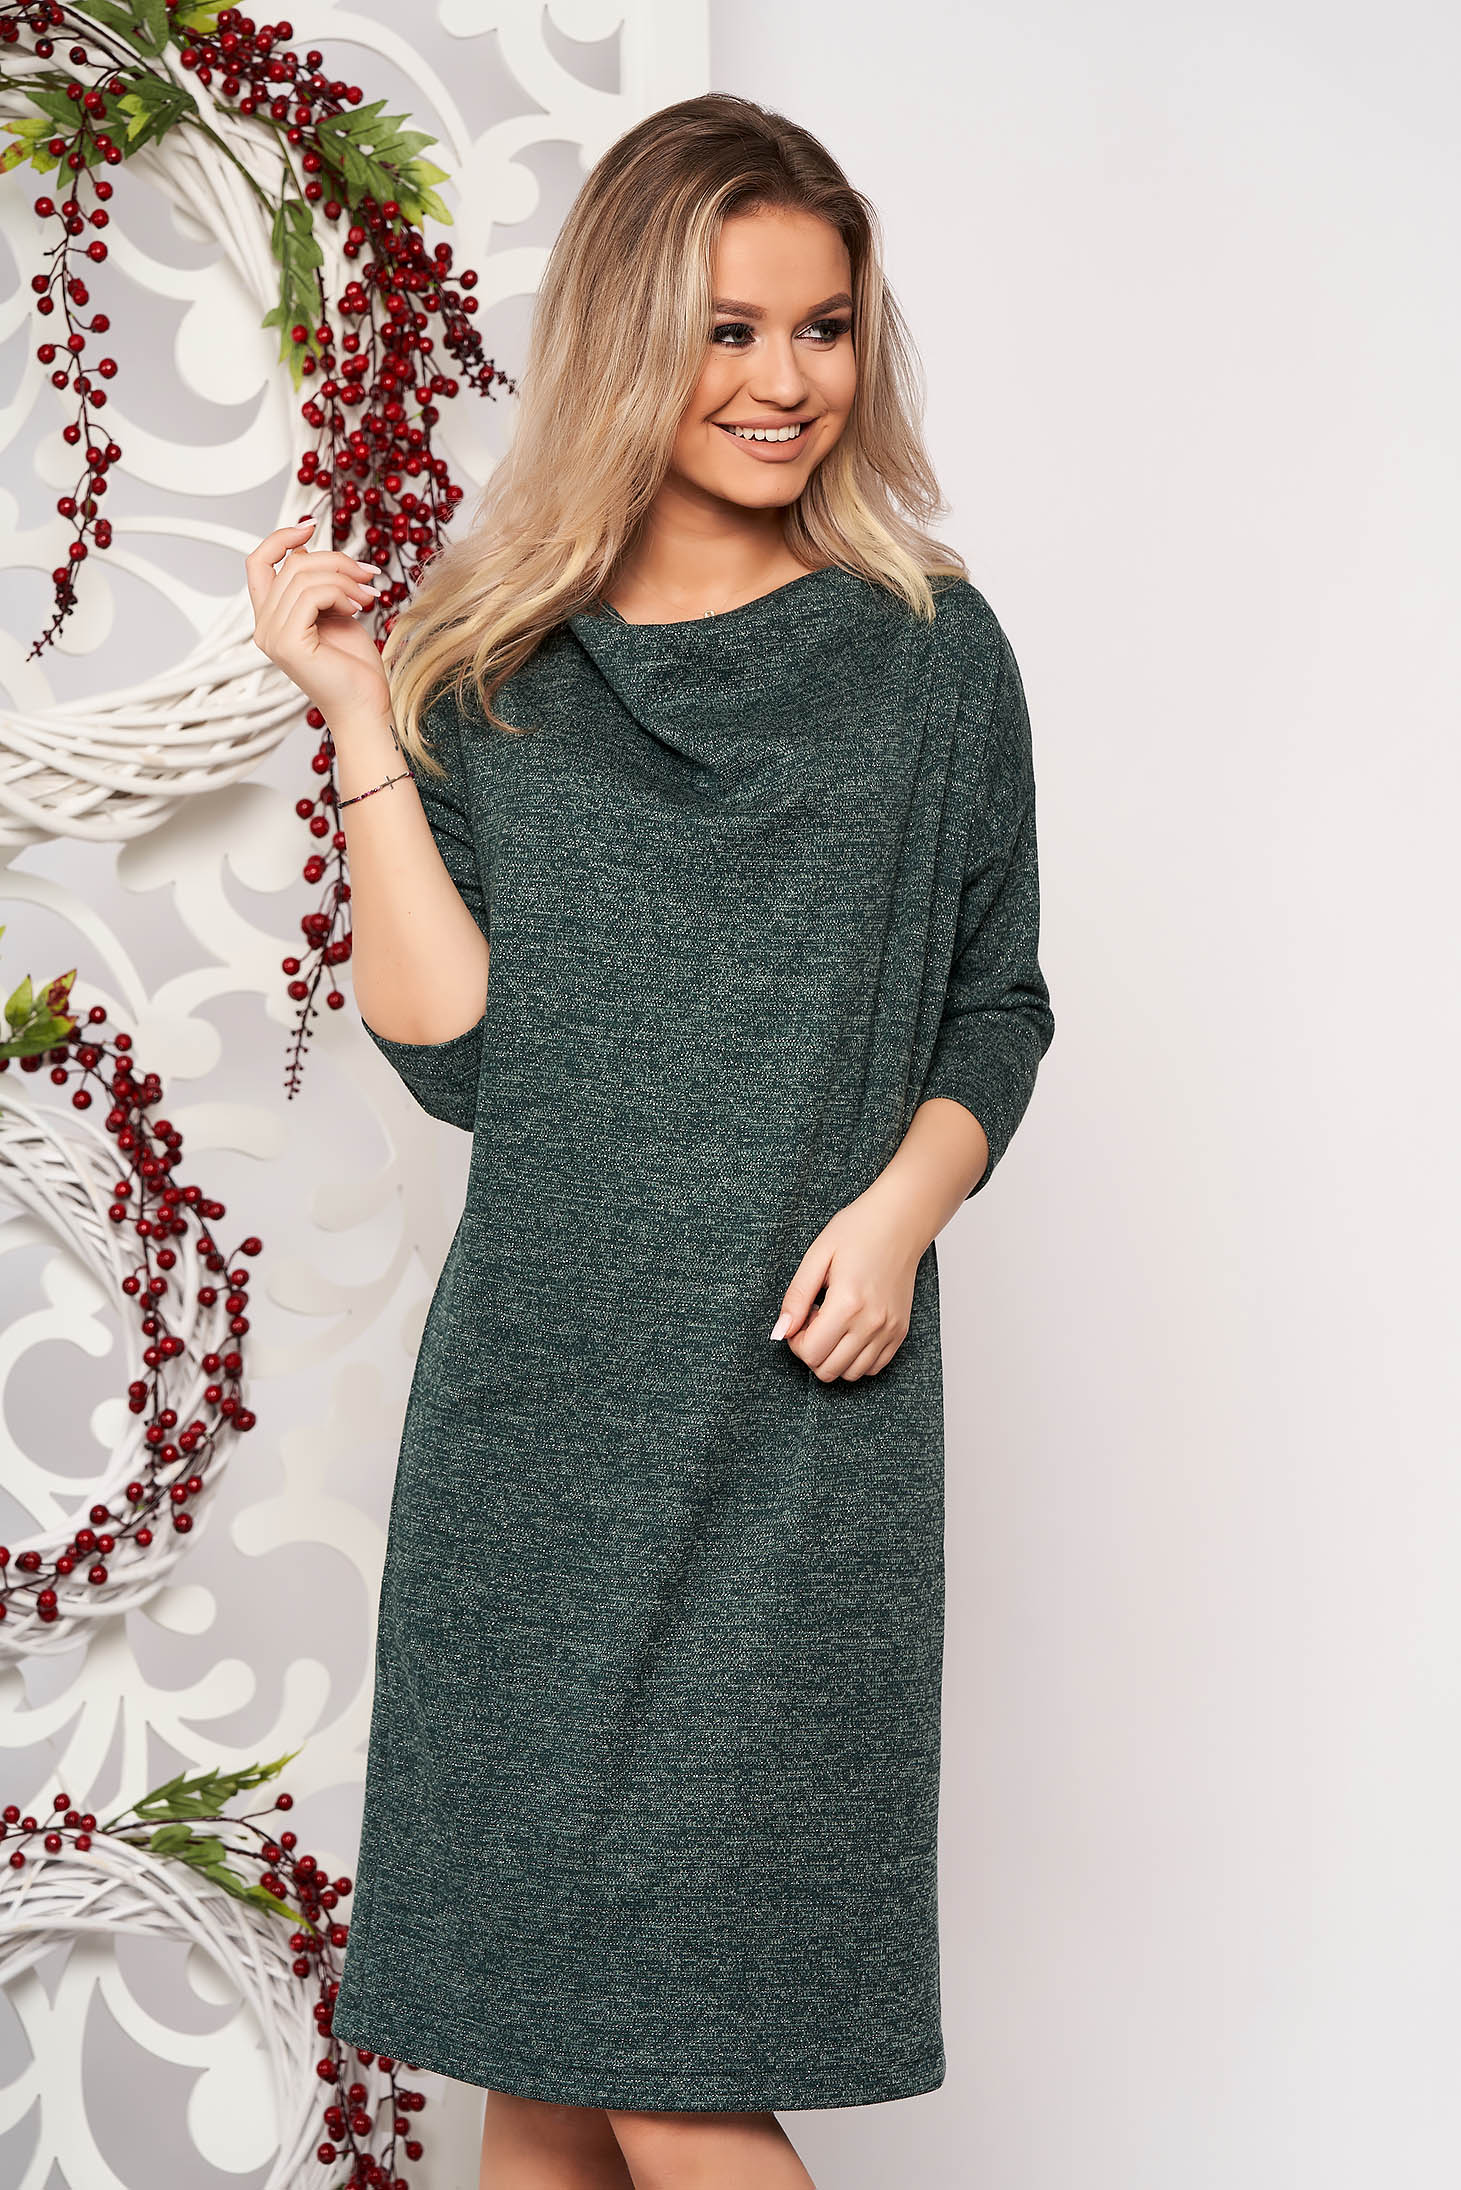 Rochie StarShinerS verde din material tricotat fir stralucitor cu croi larg